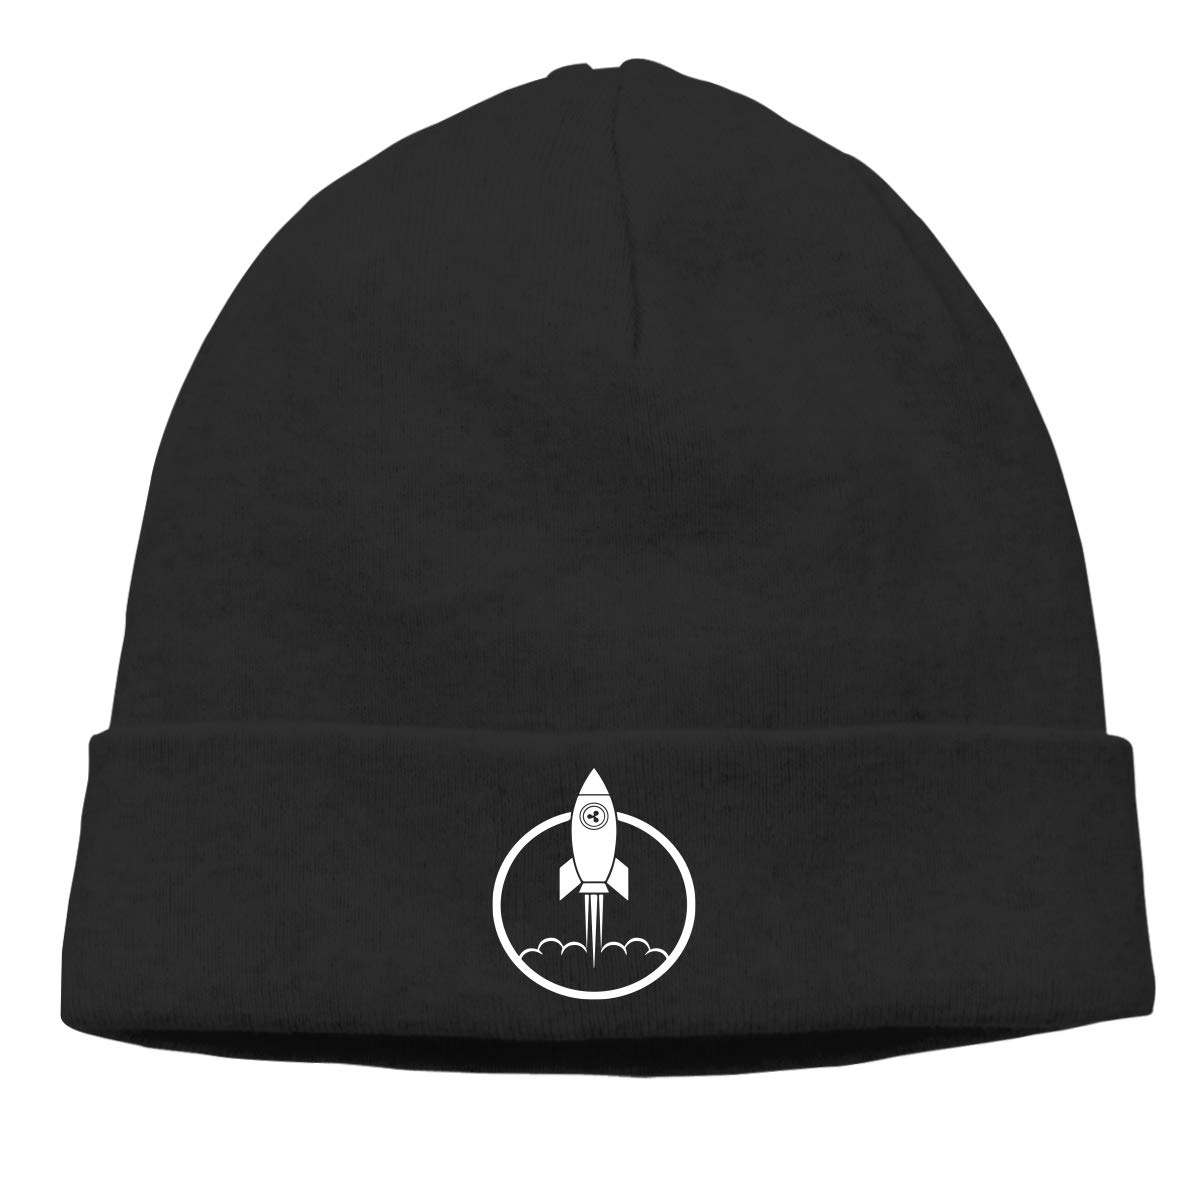 BBlooobow Unisex Ripple to The Moon Soft Skull Beanie Cap